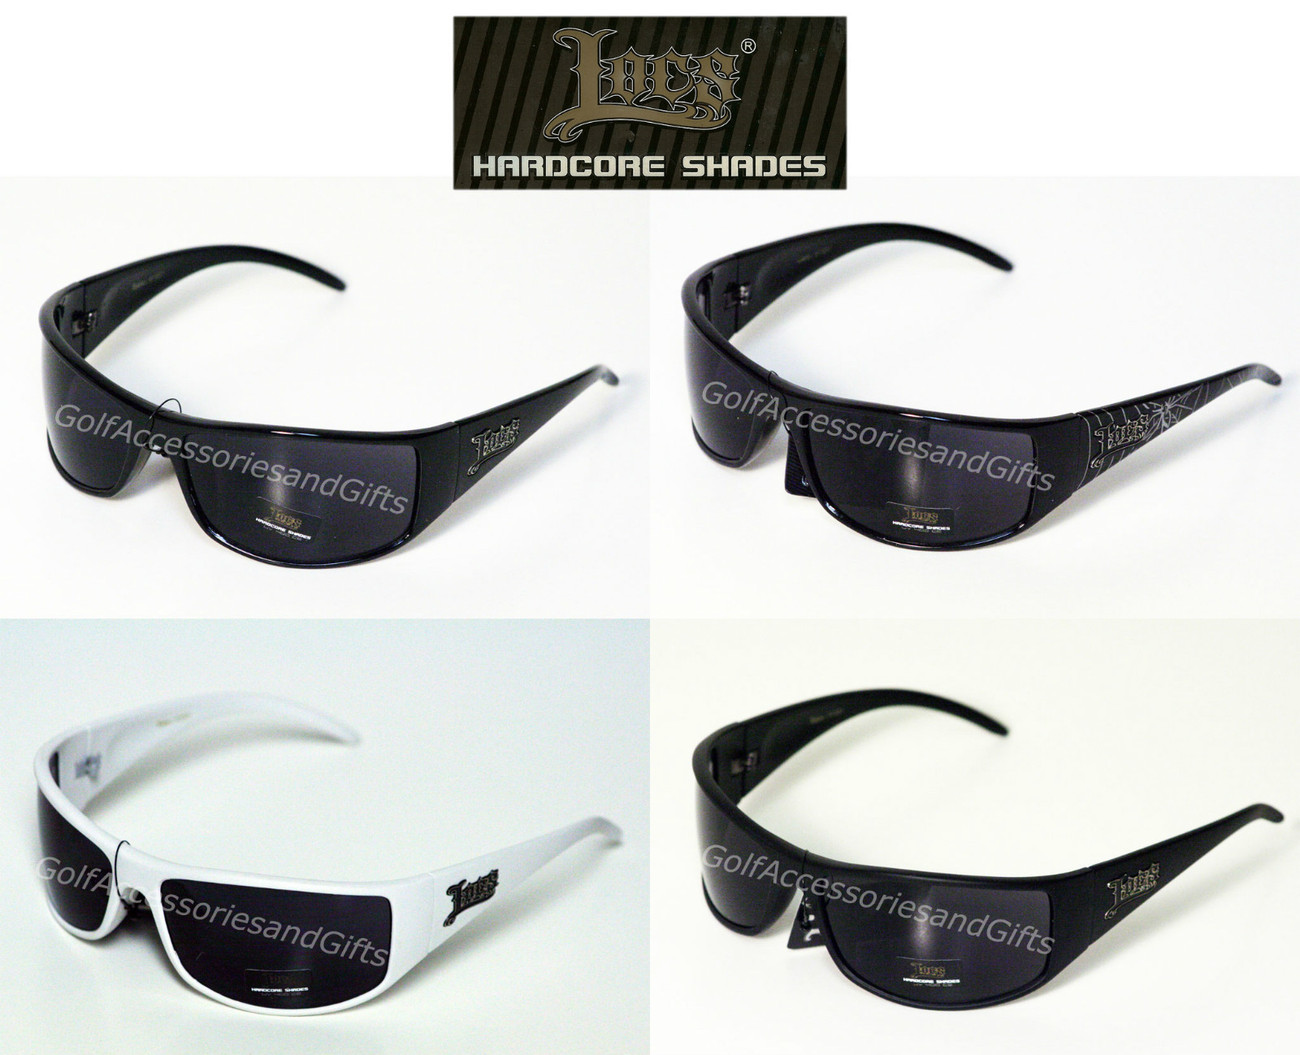 5a6428e9558 t2ec16j y0e9s2s5 qrbrp gm yzq 60 57. t2ec16j y0e9s2s5 qrbrp gm yzq 60 57.  Previous. LOCS Dark Smoke MOTORCYCLE Biker Sunglasses Cheap